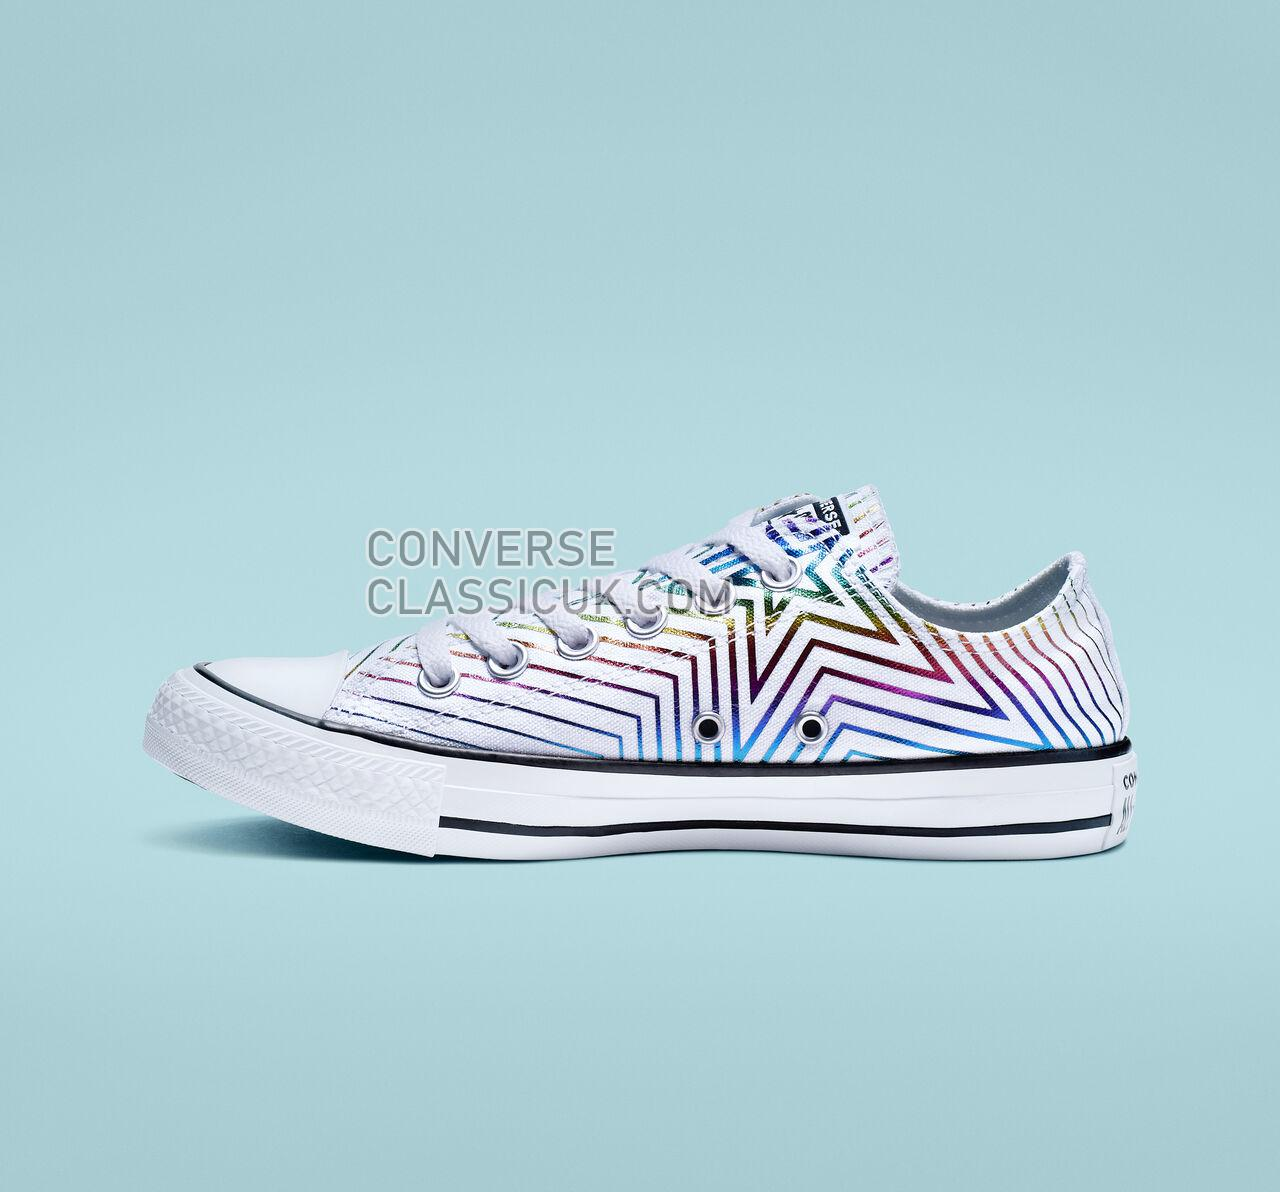 Converse Chuck Taylor All Star Exploding Star Low Top Womens 565440F White/Black/White Shoes